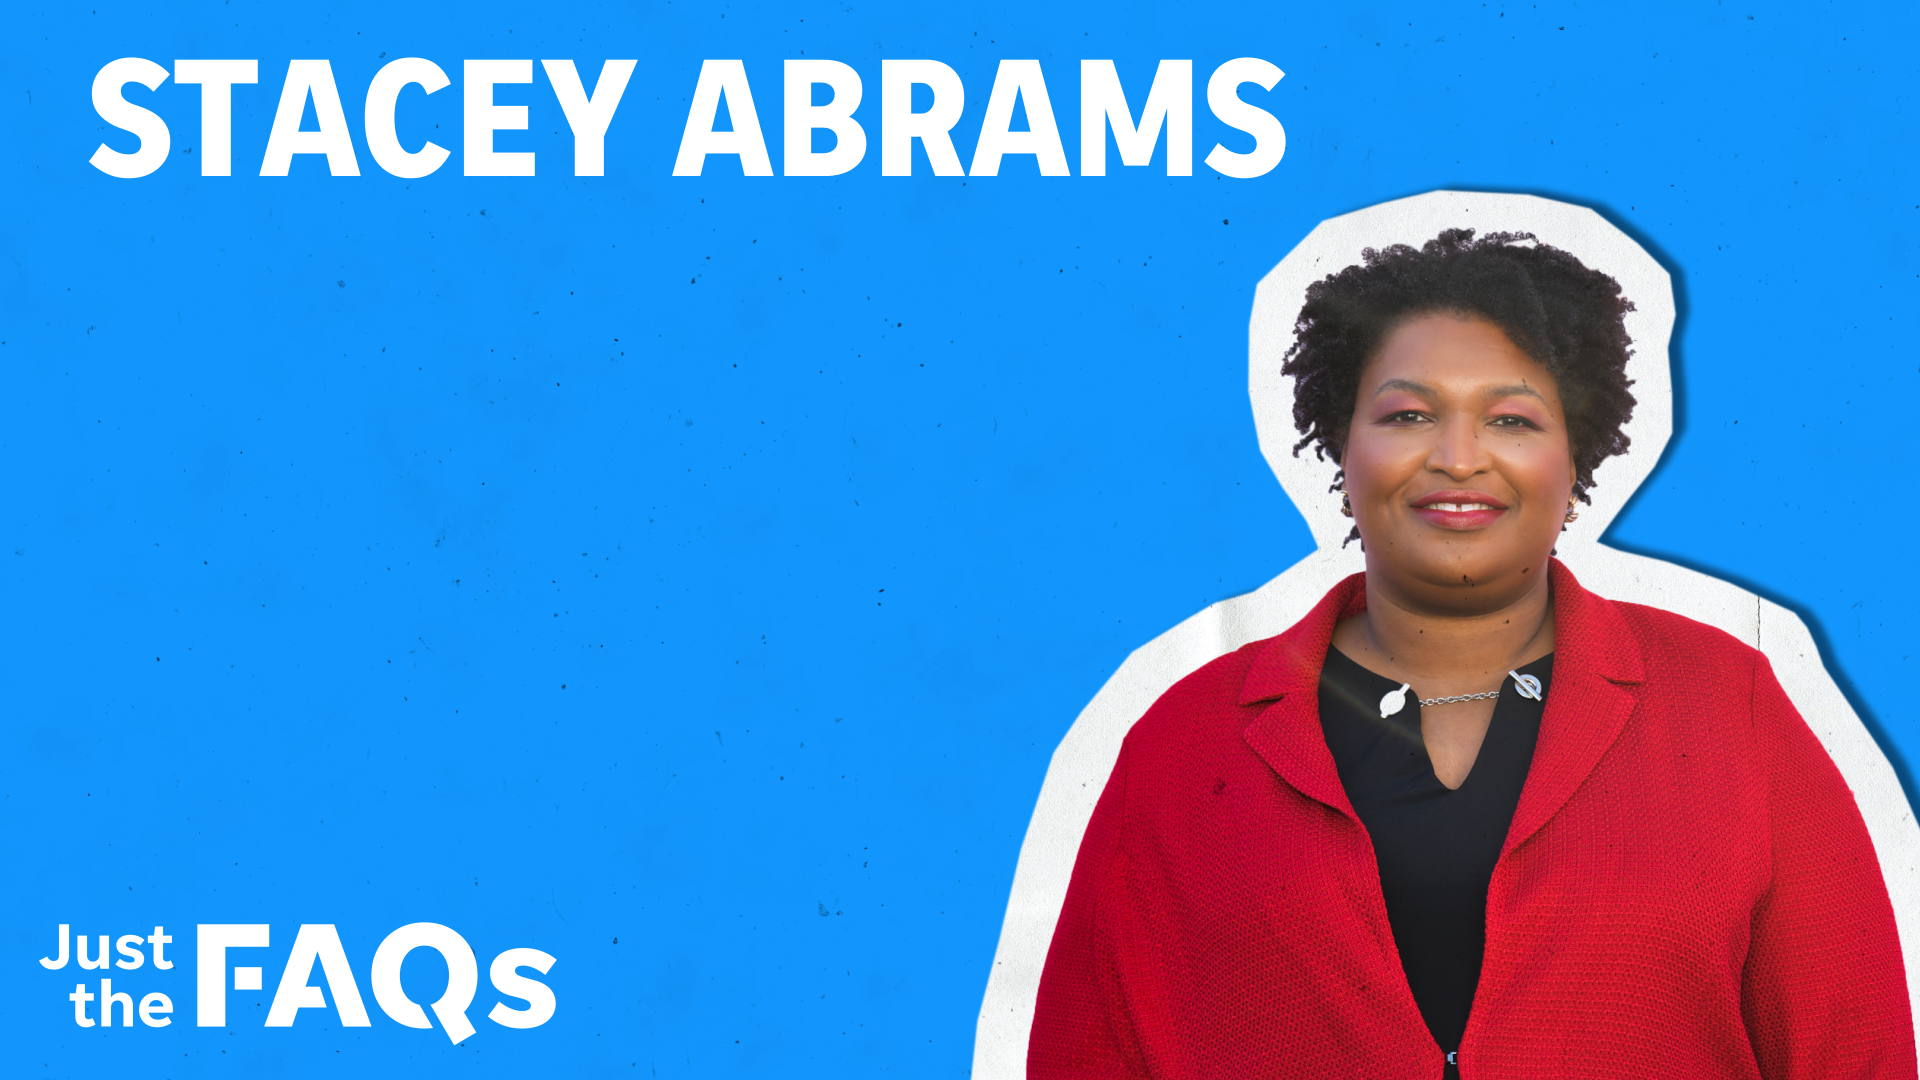 Stacey Abrams: Why Democrats are looking at her success in Georgia as a blueprint